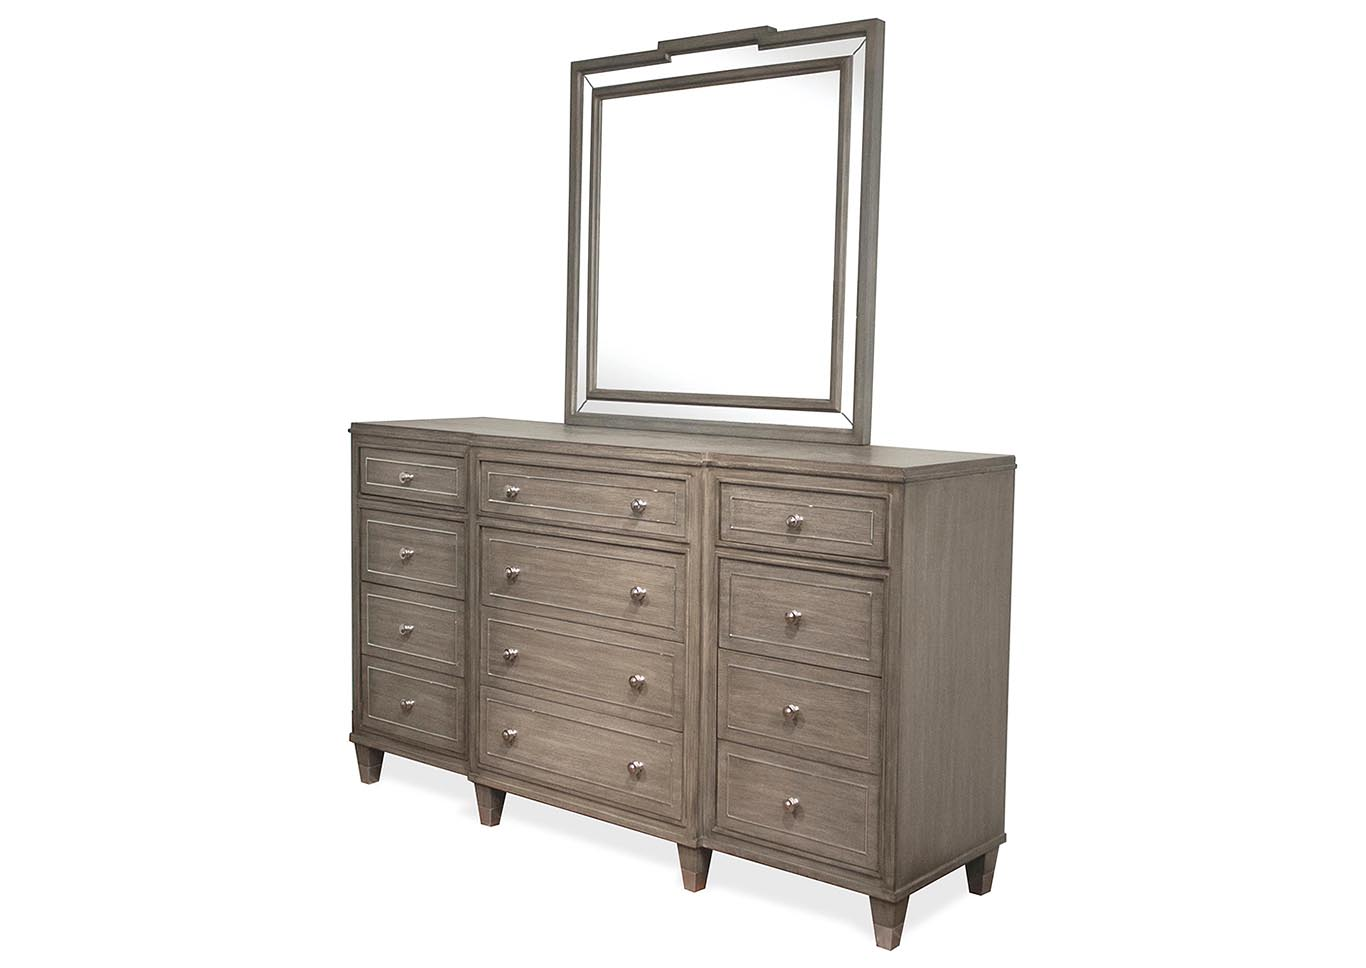 12 Drawer Chest Of Drawers Kirk Imports Dara Two Gray Wash 12 Drawer Dresser